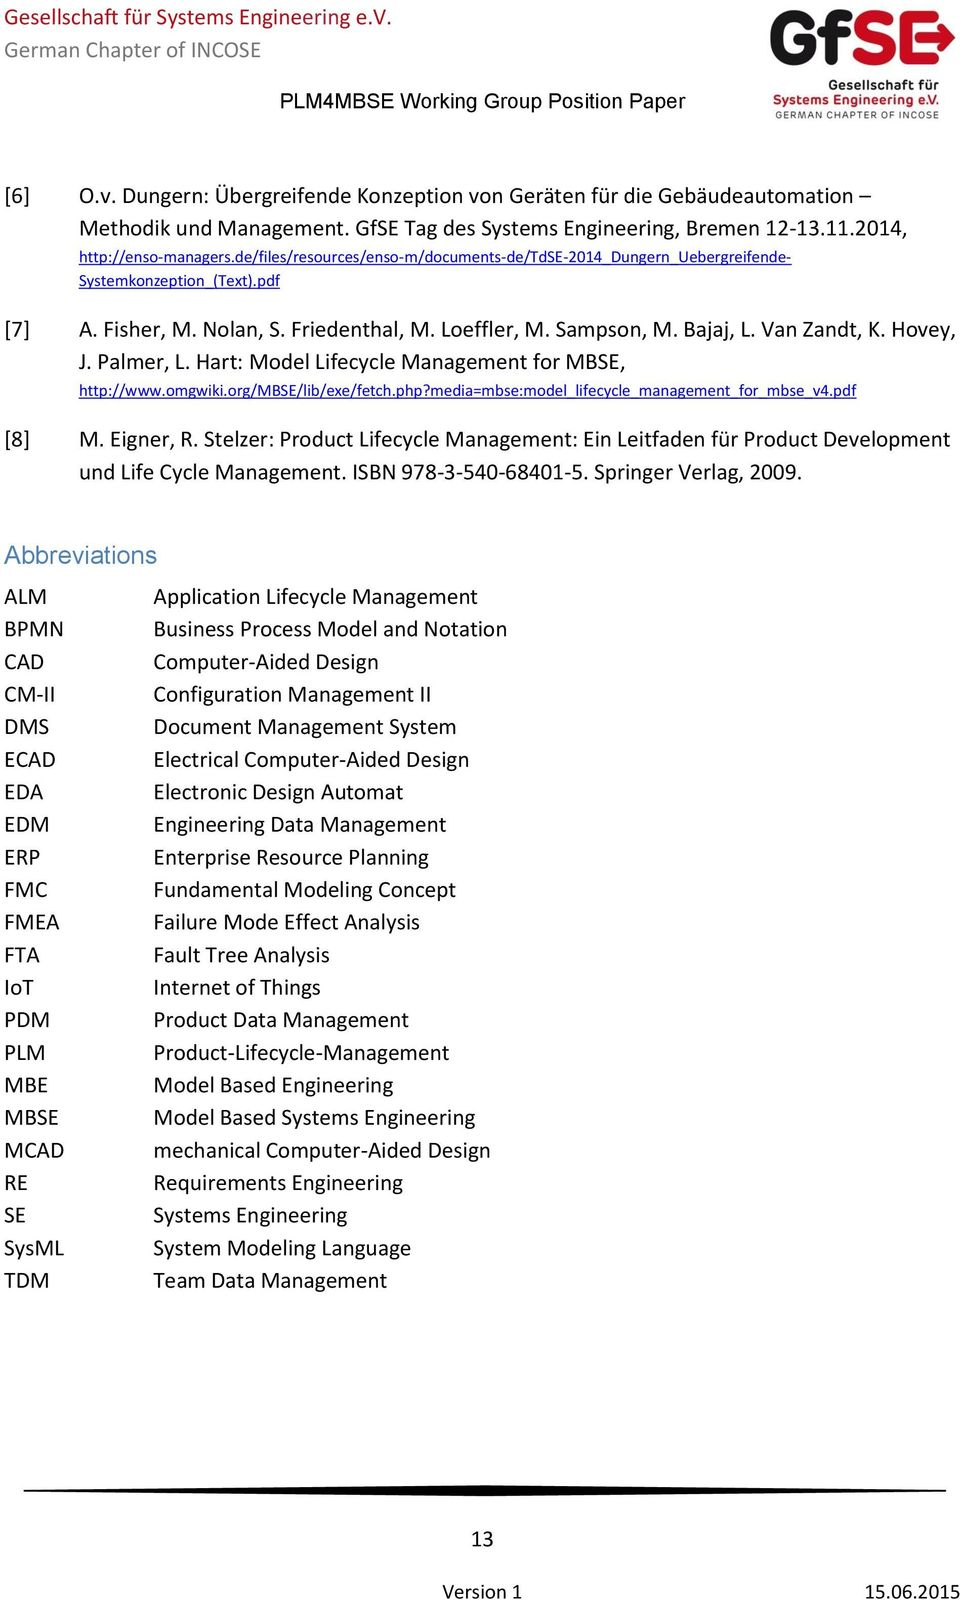 Hovey, J. Palmer, L. Hart: Model Lifecycle Management for MBSE, http://www.omgwiki.org/mbse/lib/exe/fetch.php?media=mbse:model_lifecycle_management_for_mbse_v4.pdf [8] M. Eigner, R.